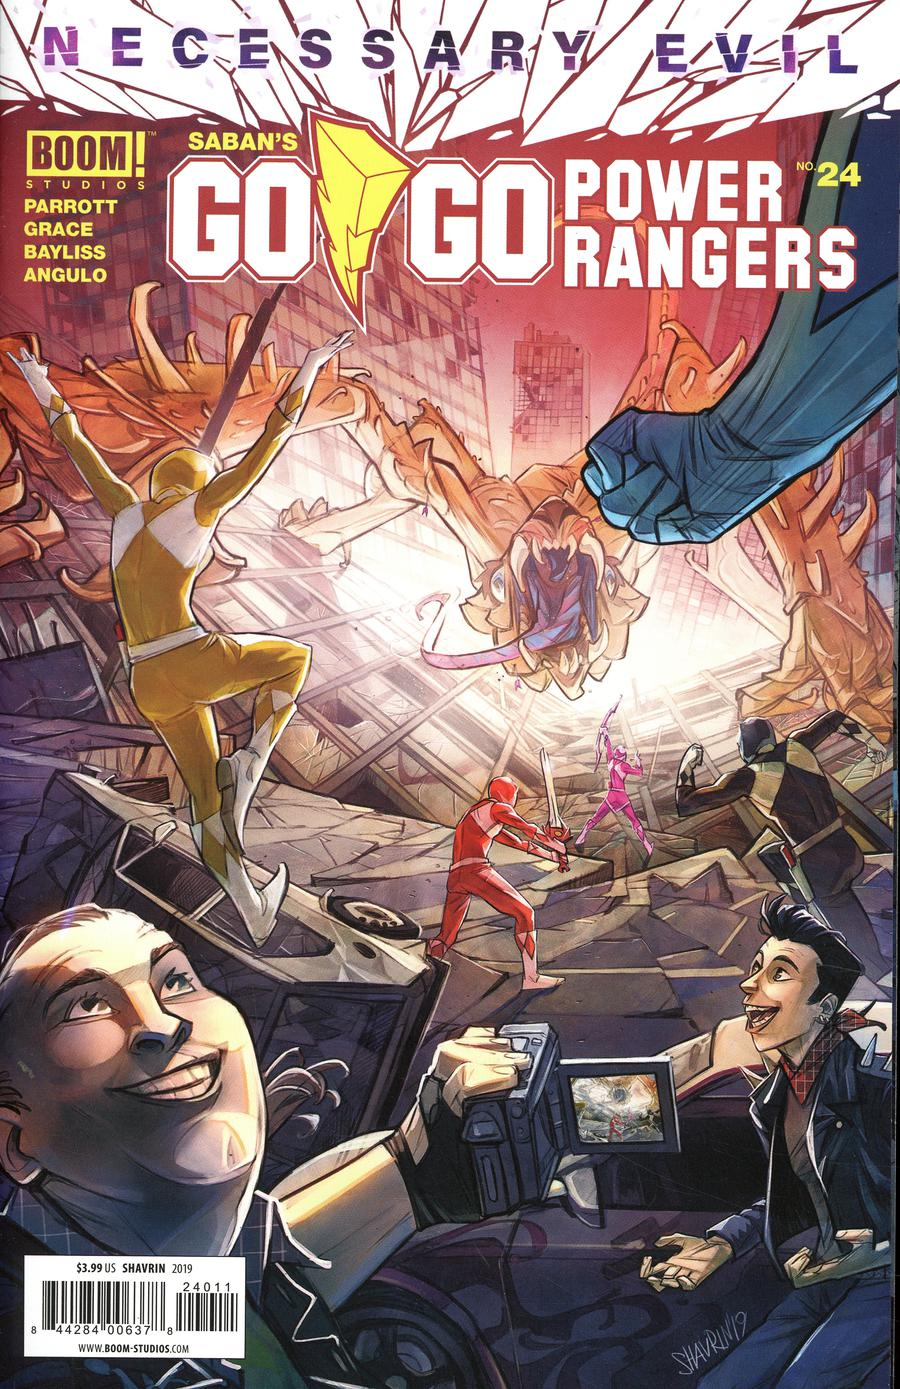 Sabans Go Go Power Rangers #24 Cover A Regular Ivan Shavrin Cover